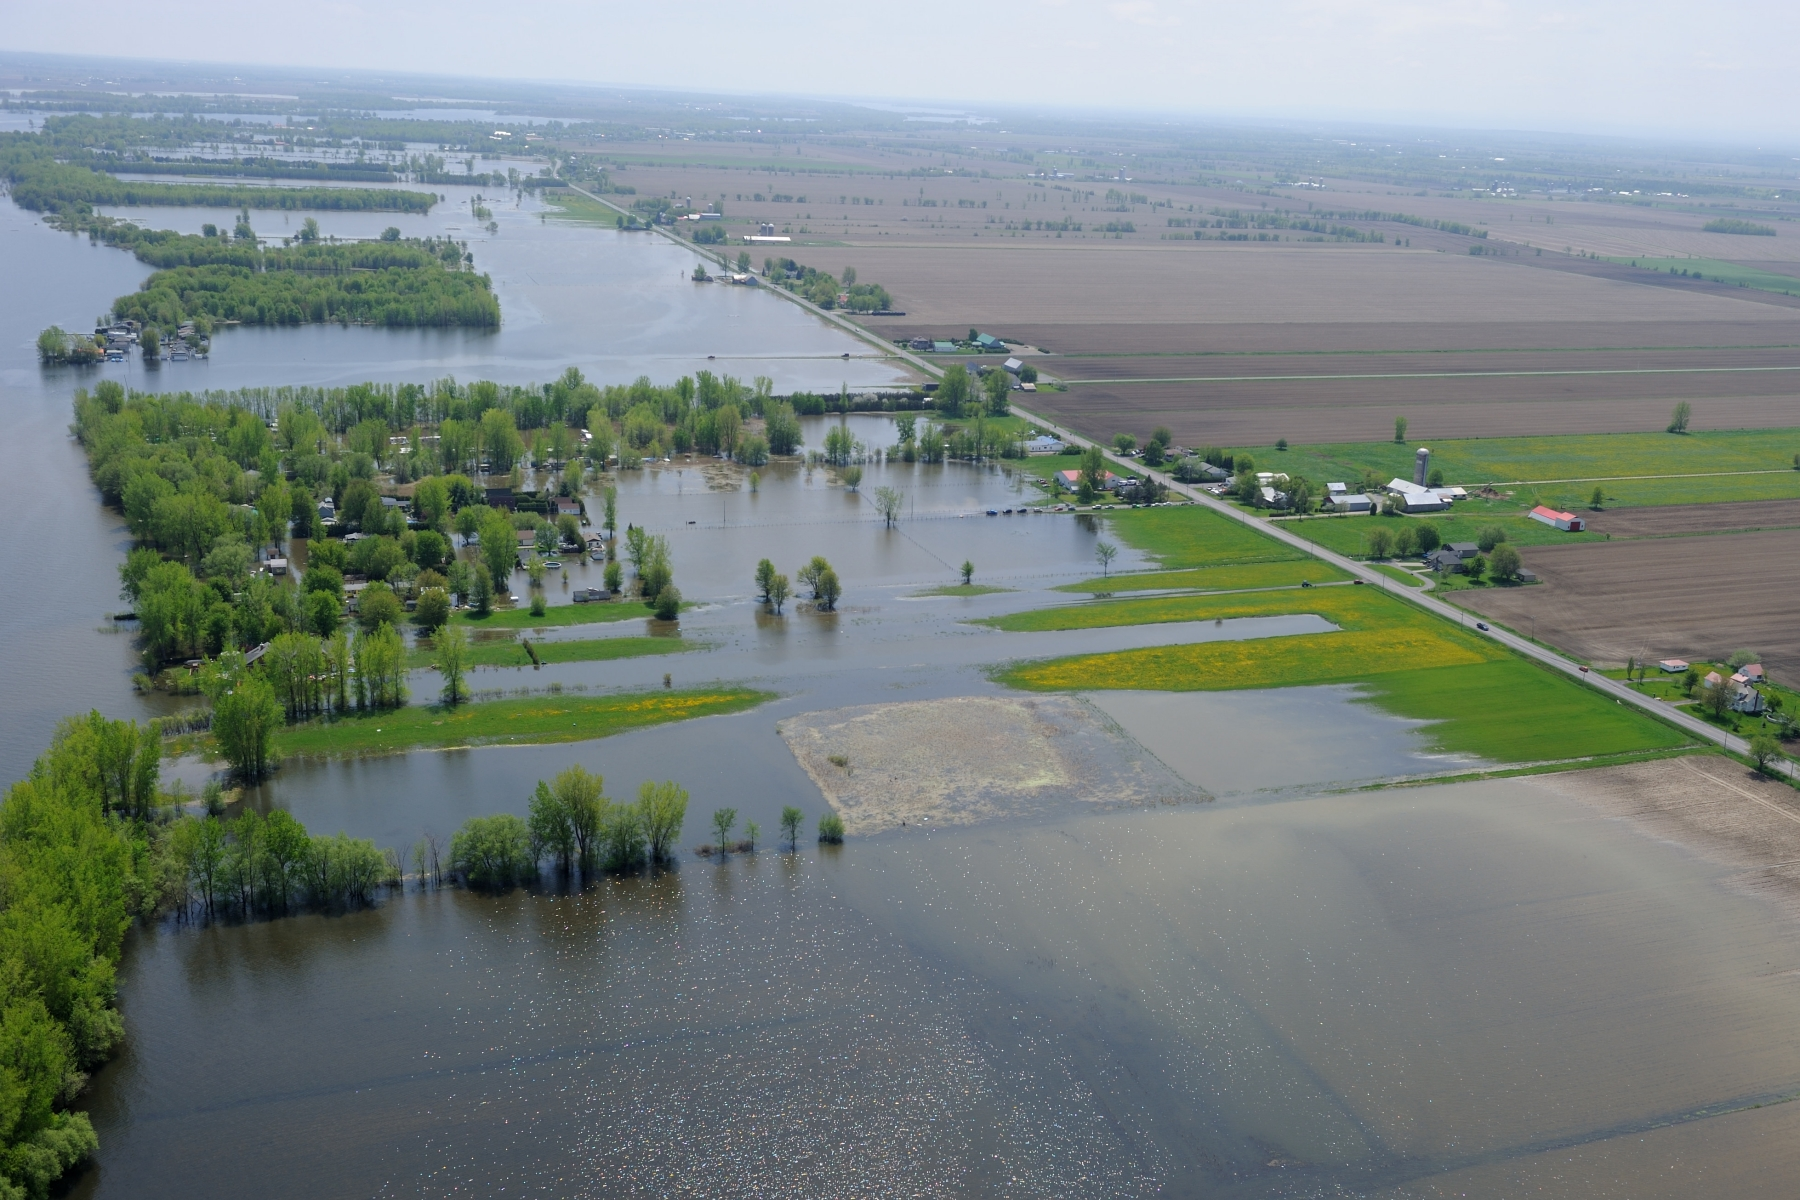 Since the end of April, the Montérégie region has been affected by floods.